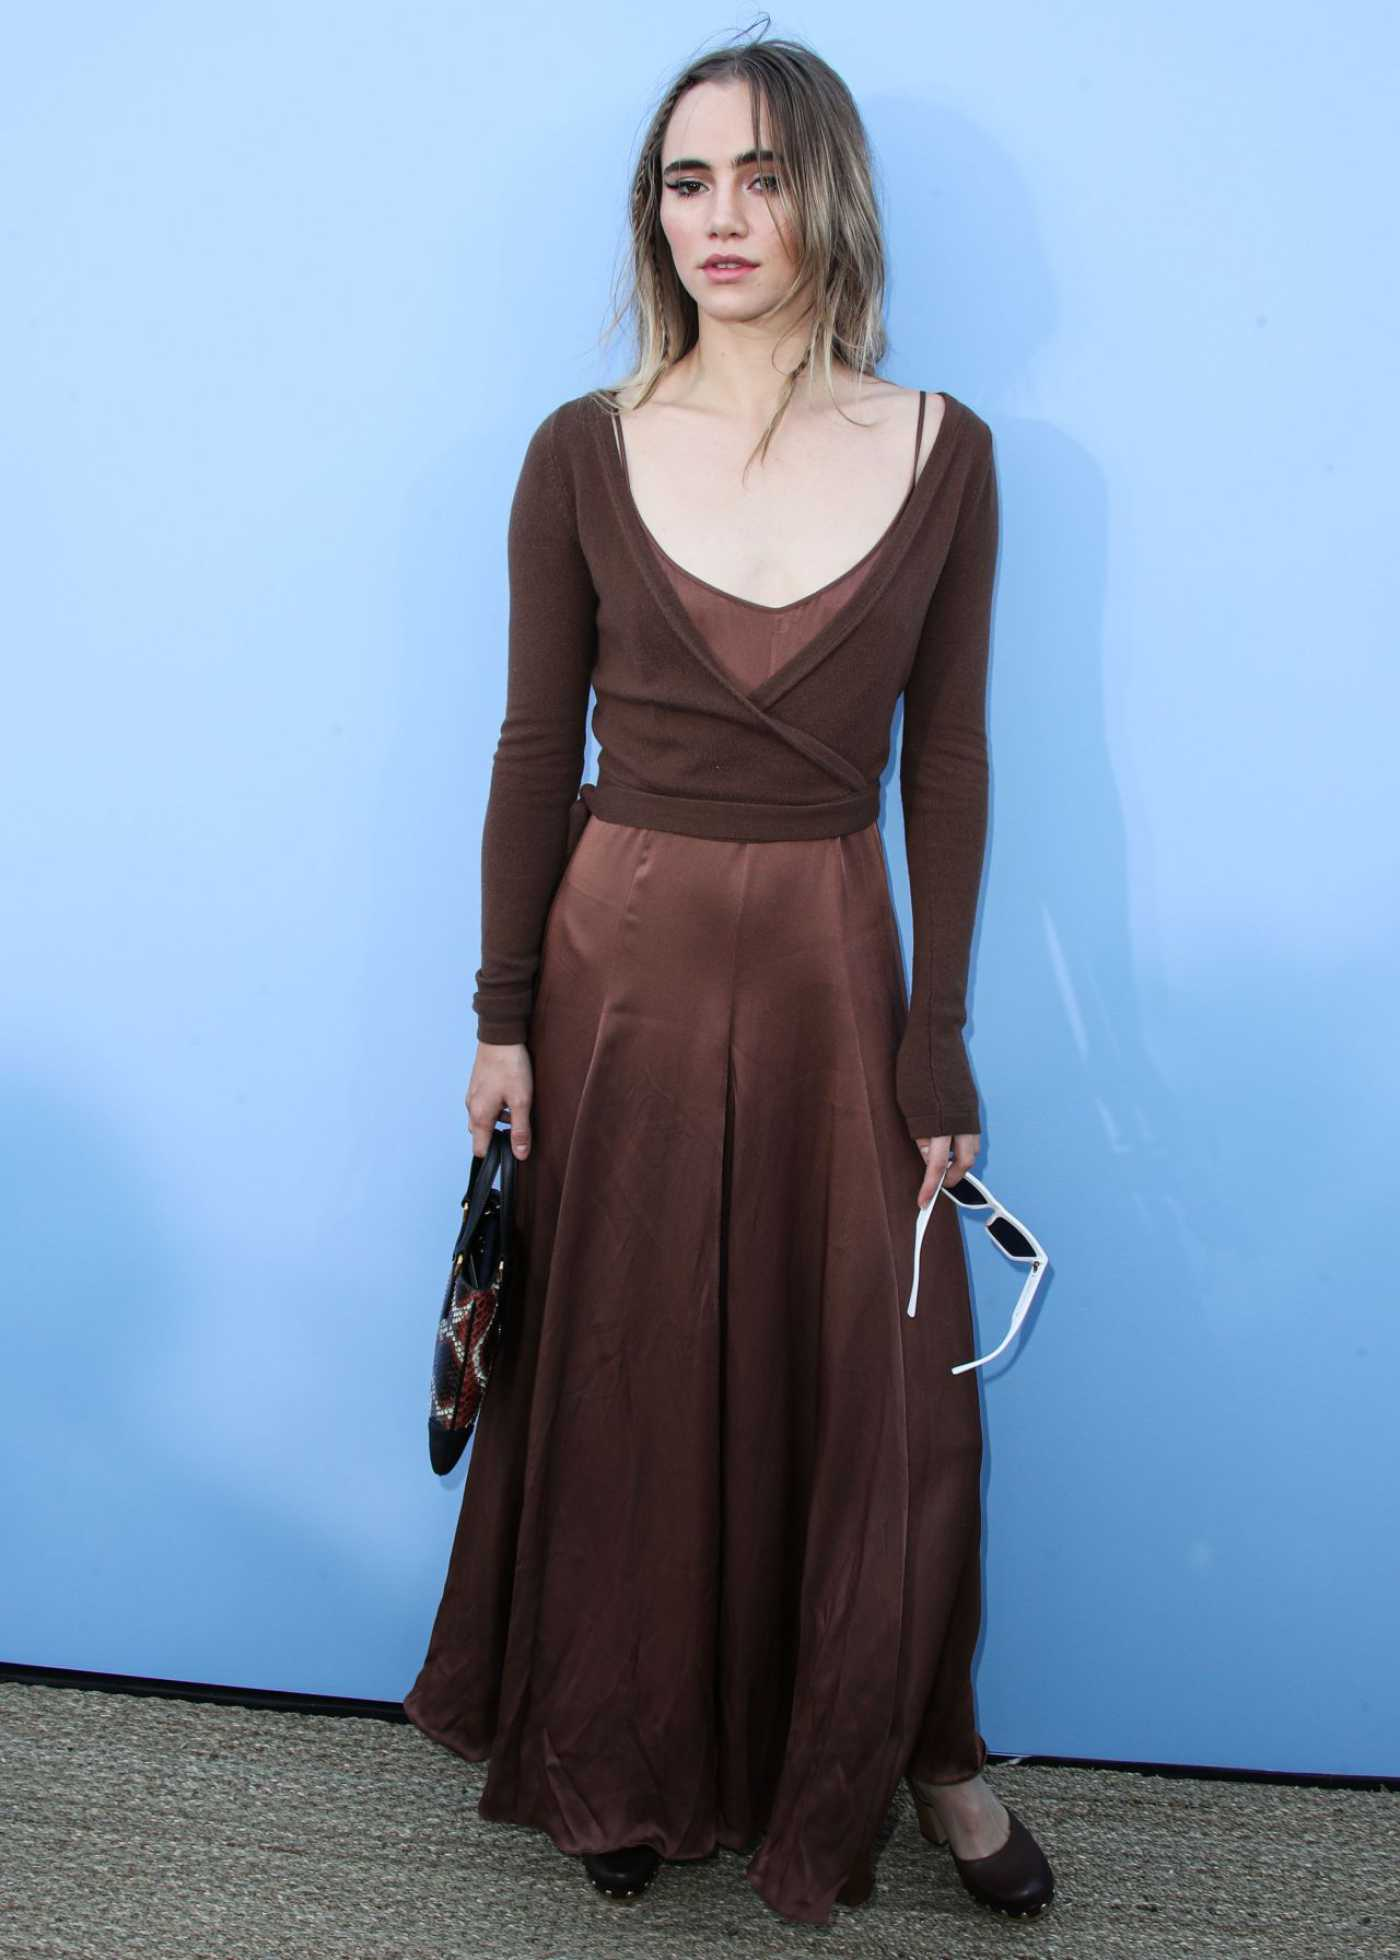 Suki Waterhouse Attends the Michael Kors Show During New York Fashion Week in New York 09/11/2019